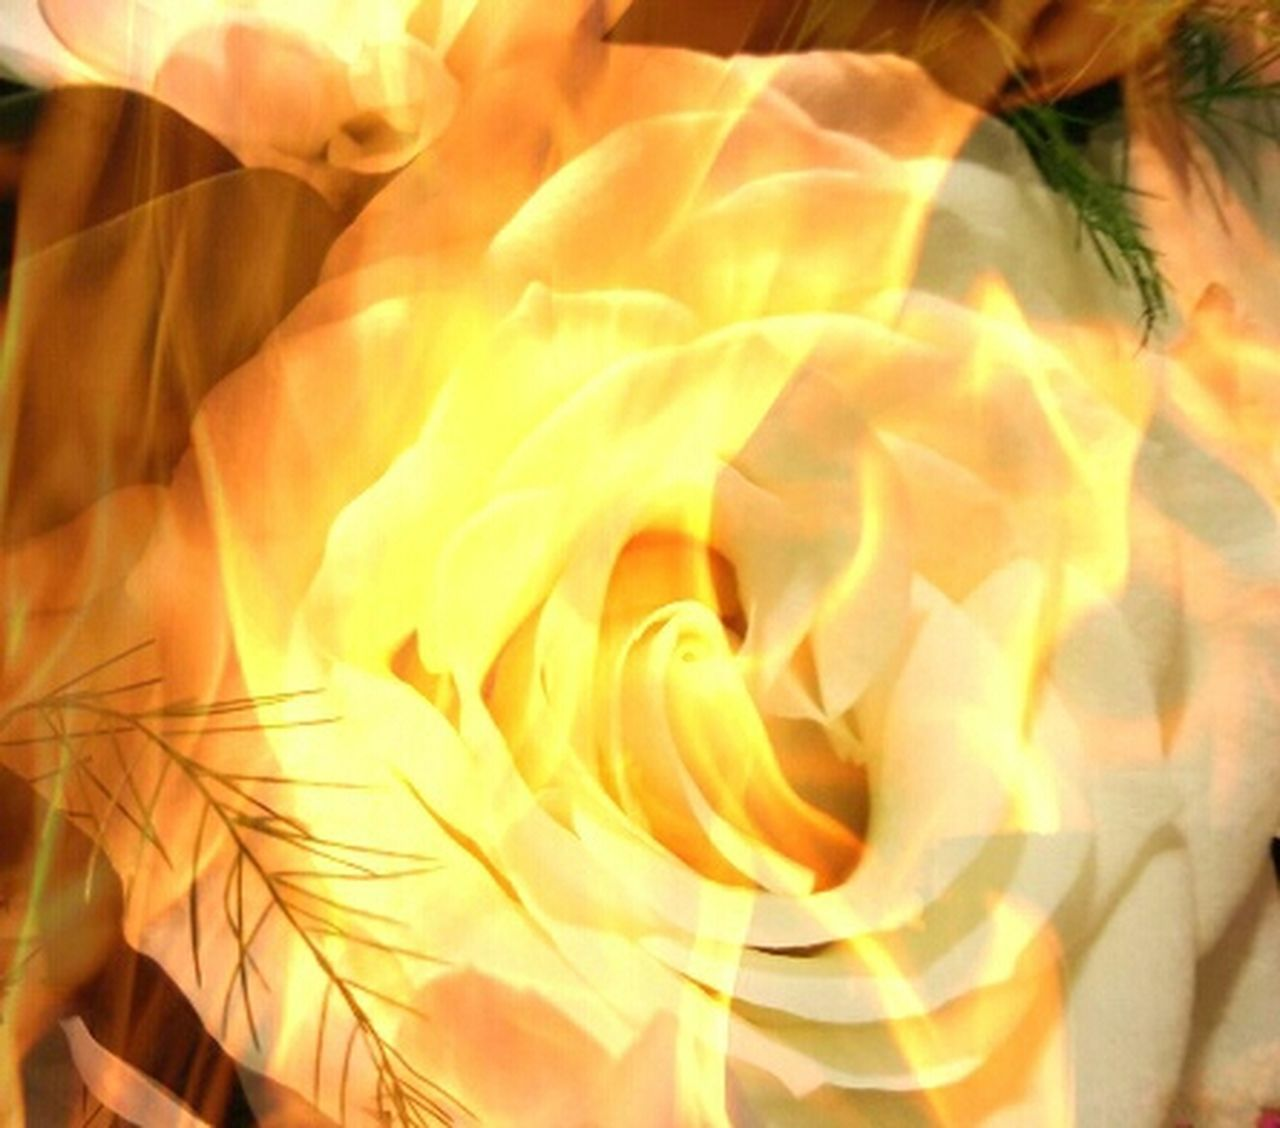 Rose🌹 Flower On Fire Yellow Flowers Gold Flora Close-up Macro Vibrant Color Single Flower Full Frame Petal Manipulation